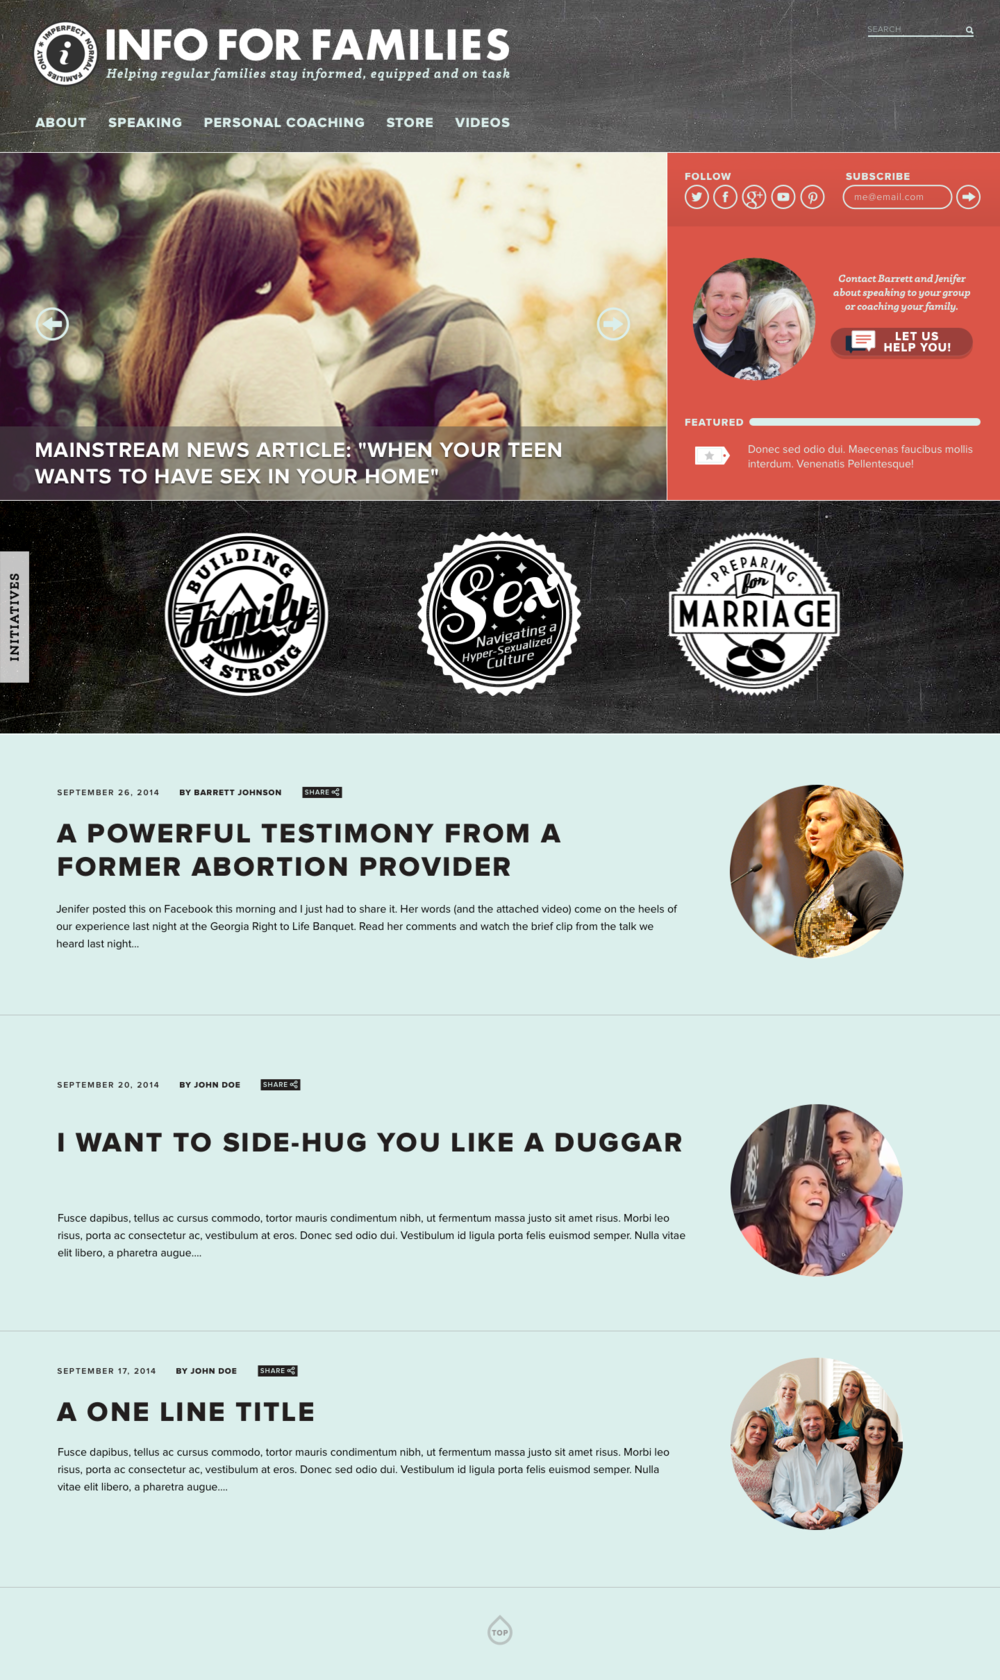 INFO-Final-Homepage.png